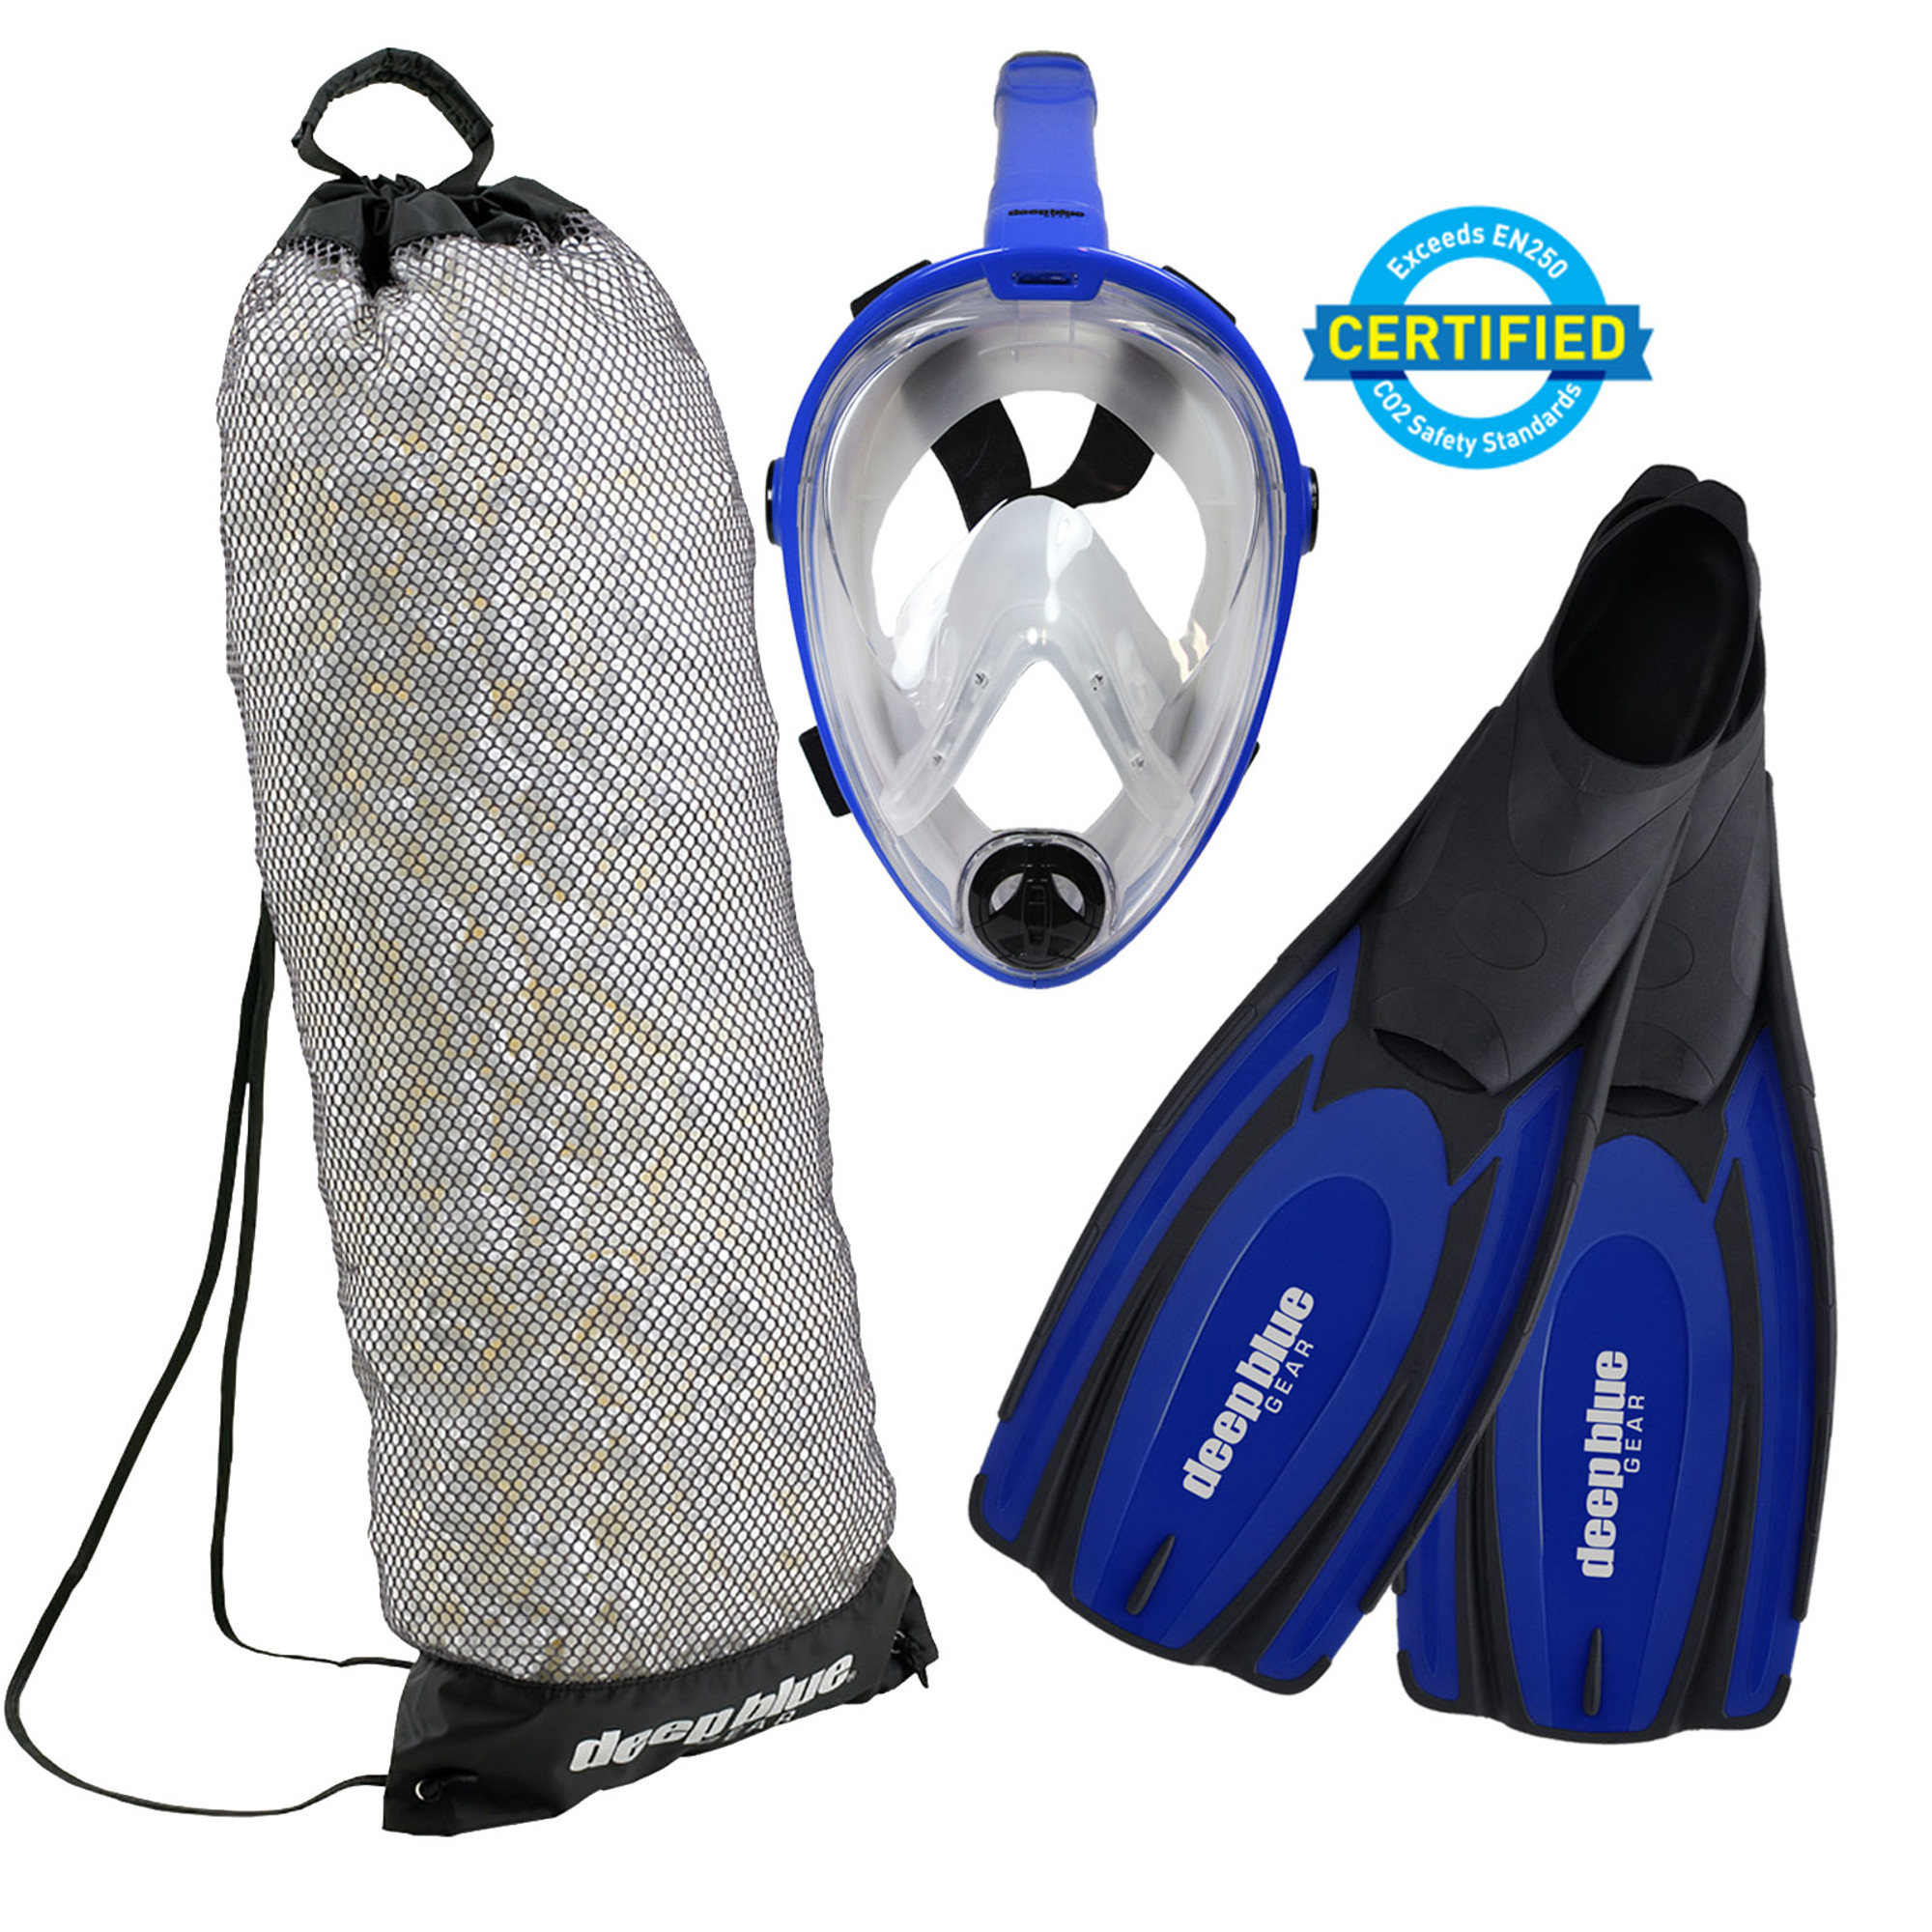 Full Face Mask - Adult Snorkeling Set